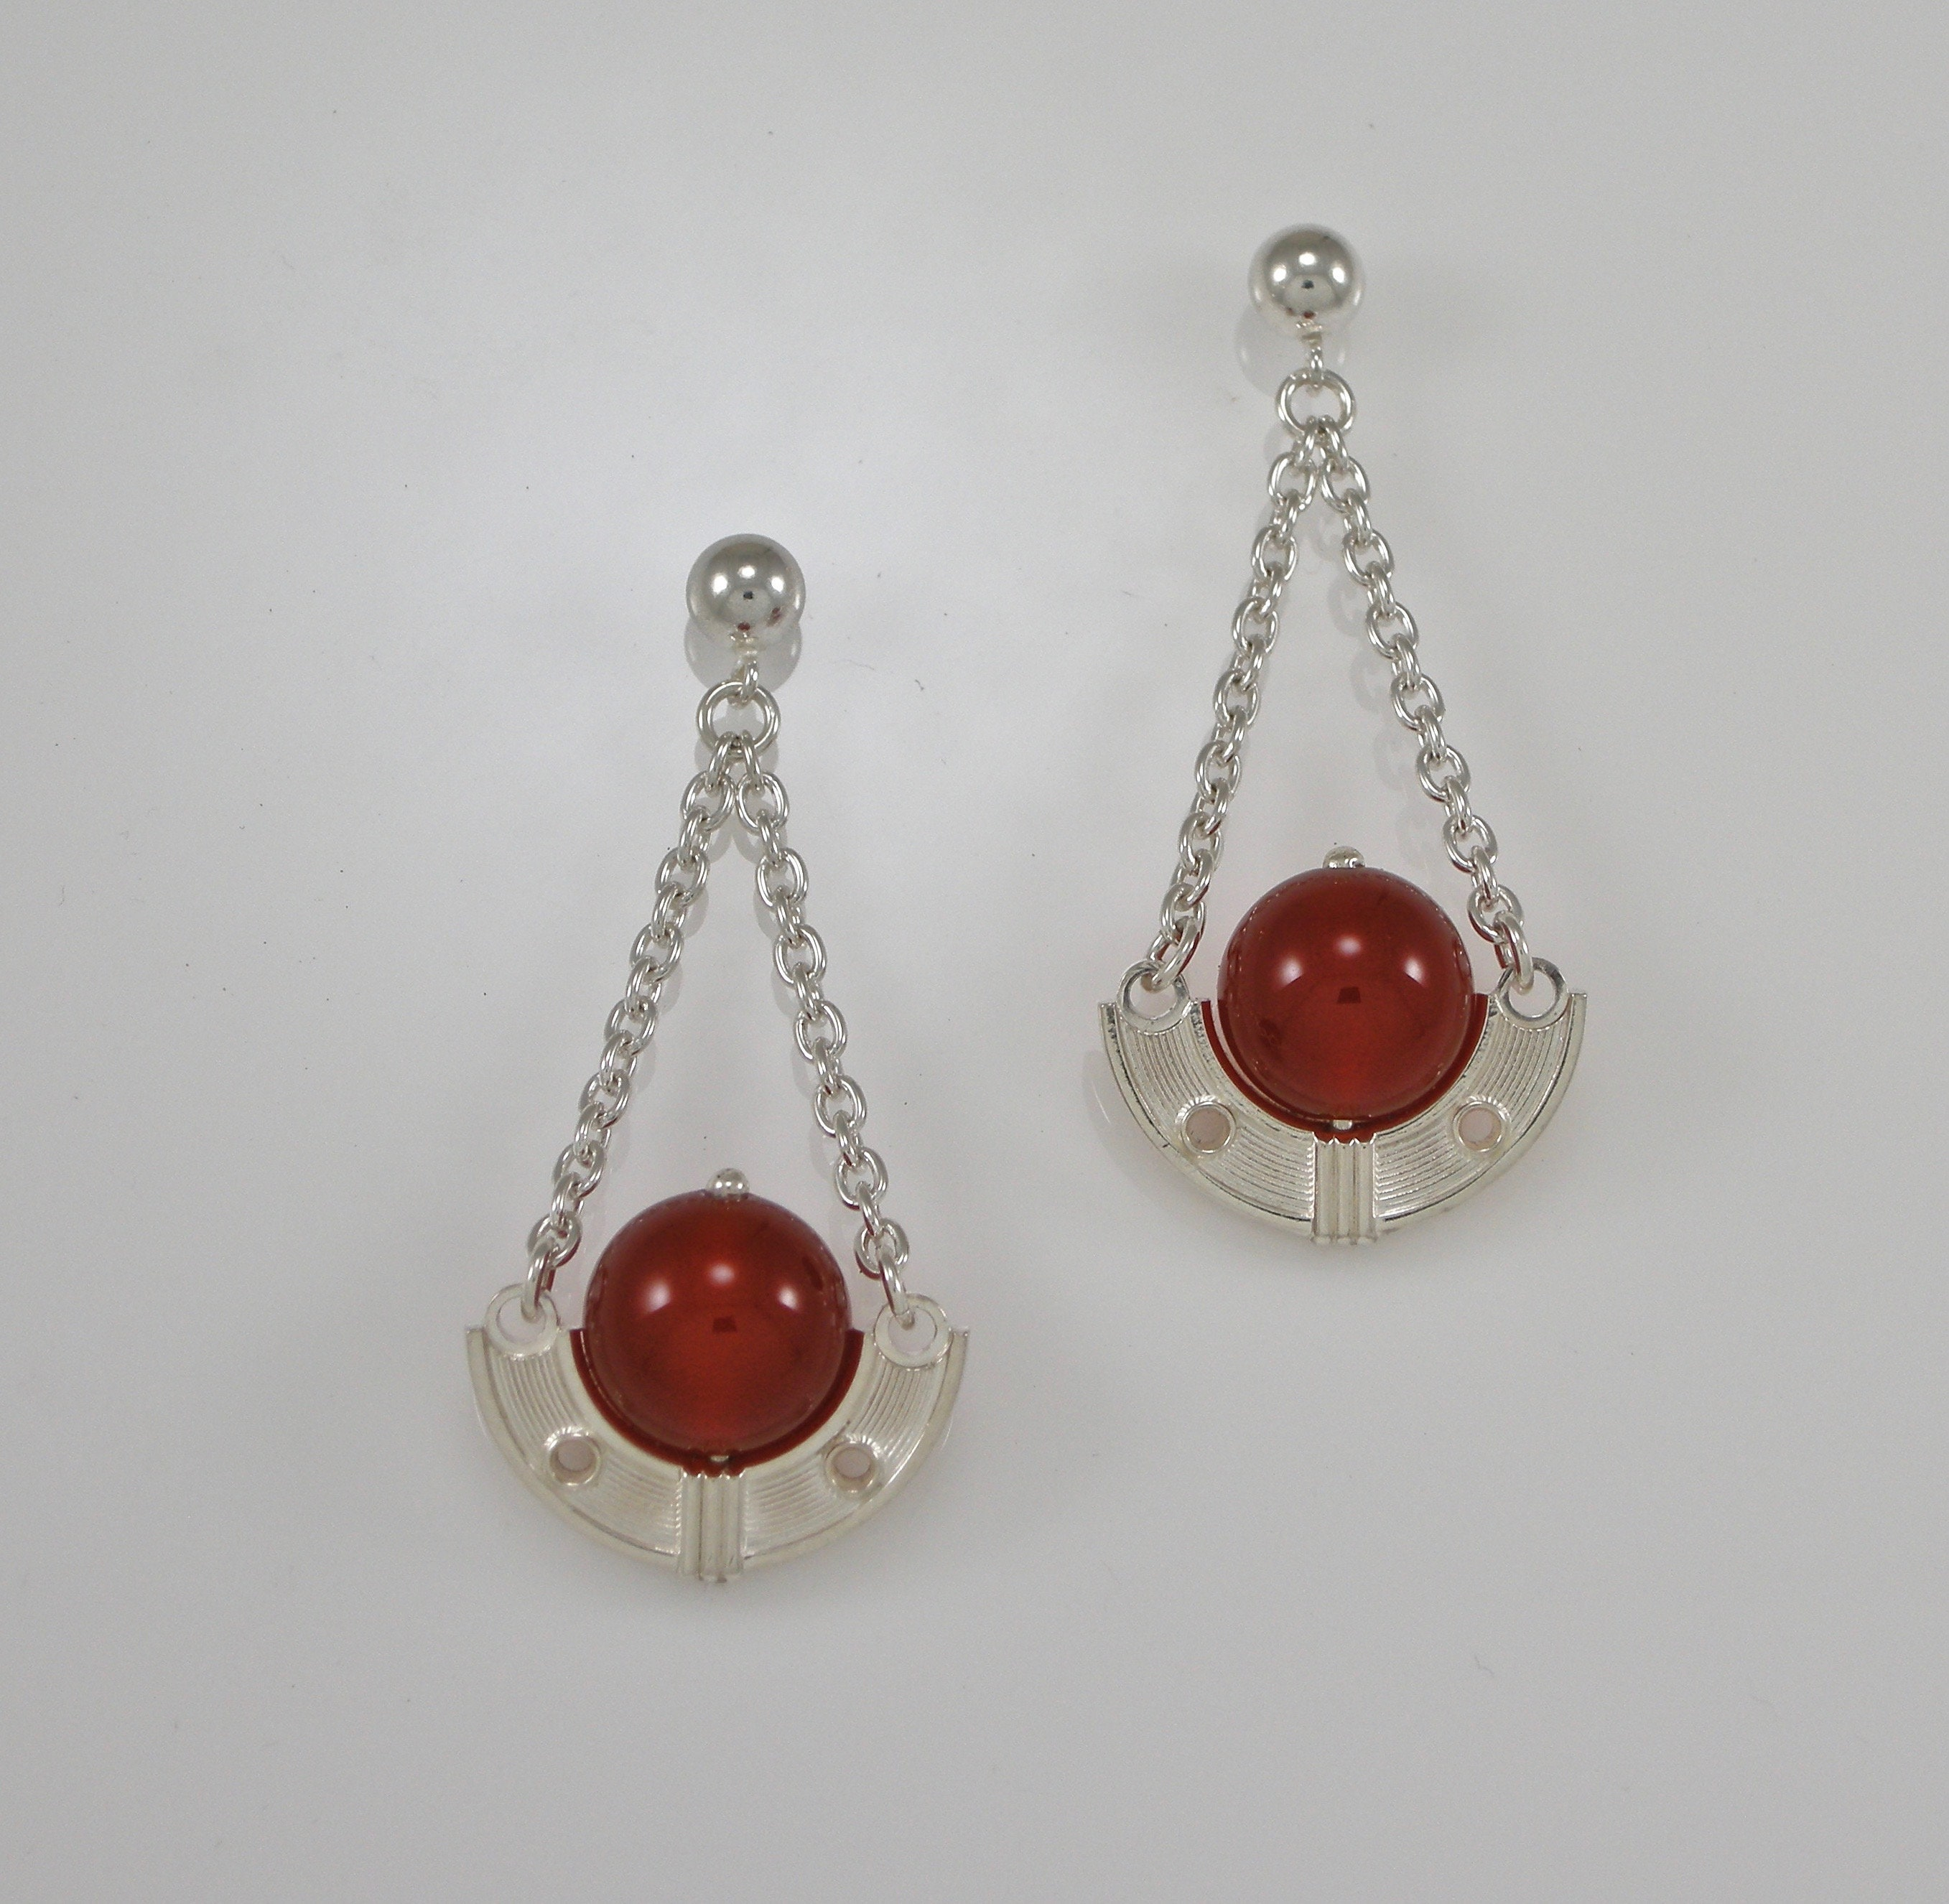 image carnelian silver original store online marcybell earrings and products